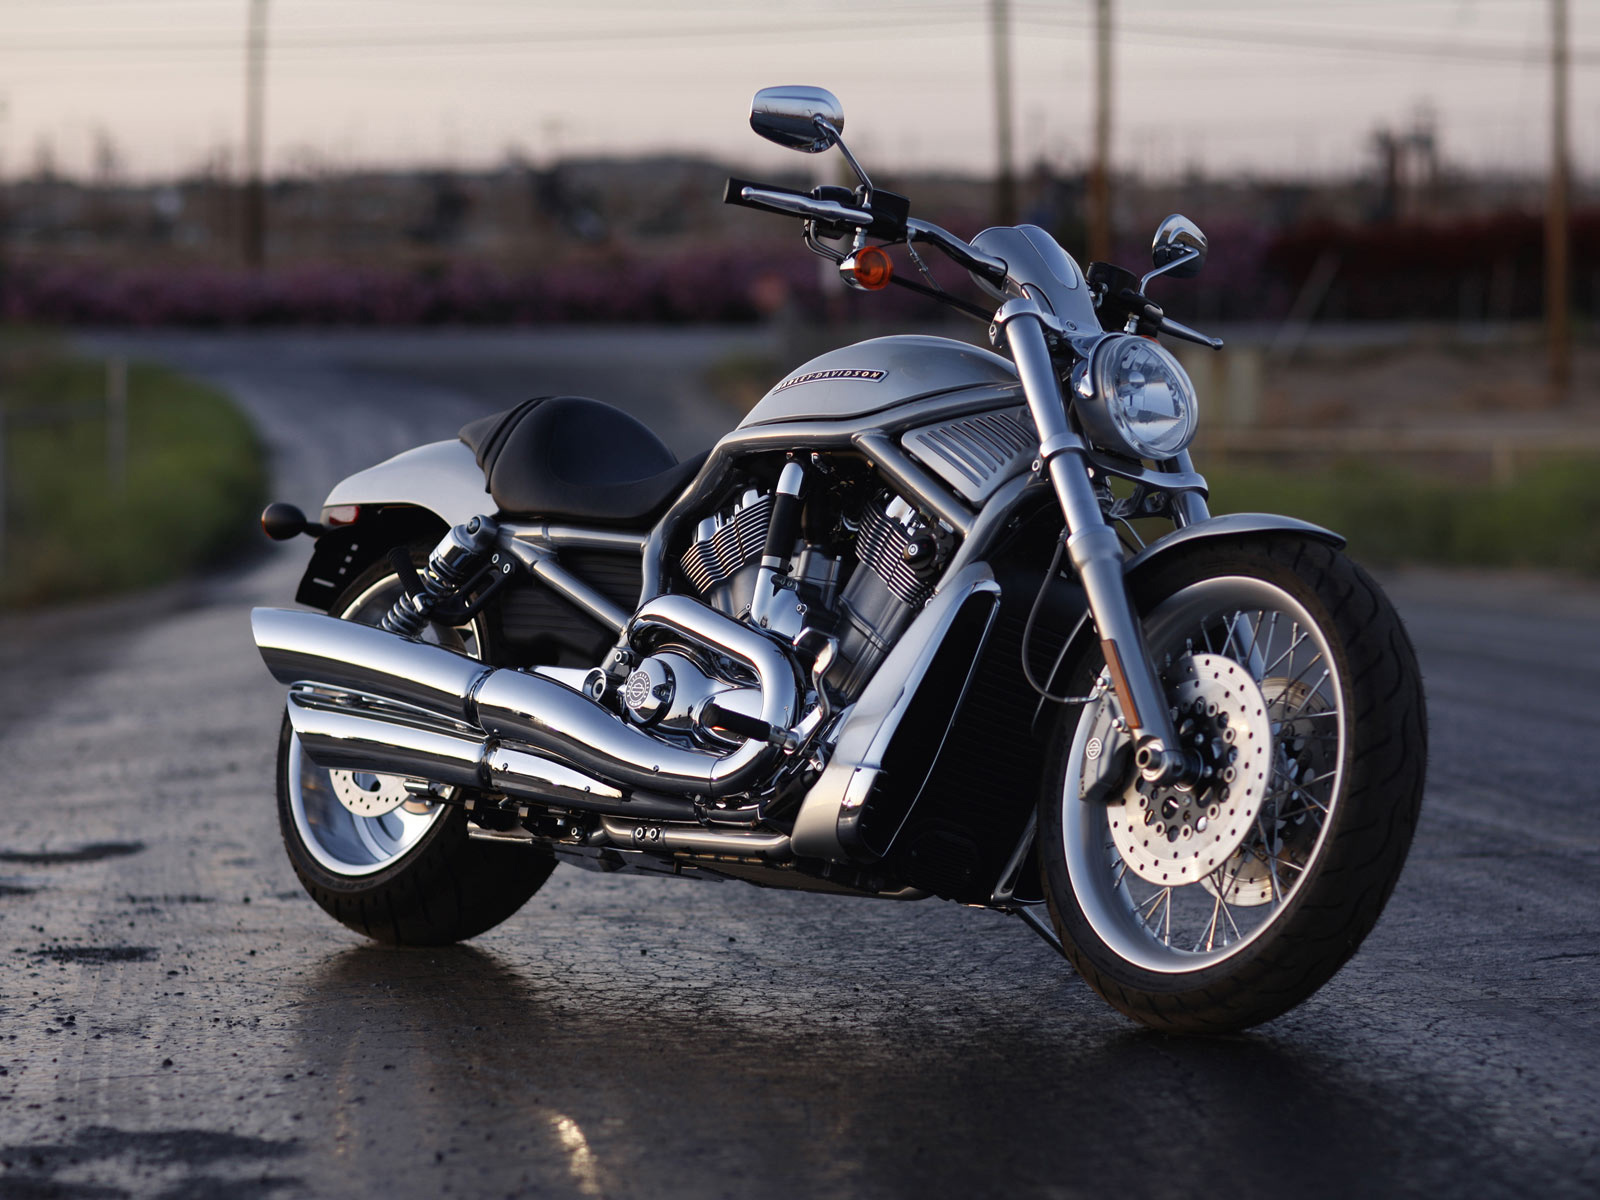 Harley davidson vrscf bike HD wallpaper Download 1080p 1600x1200